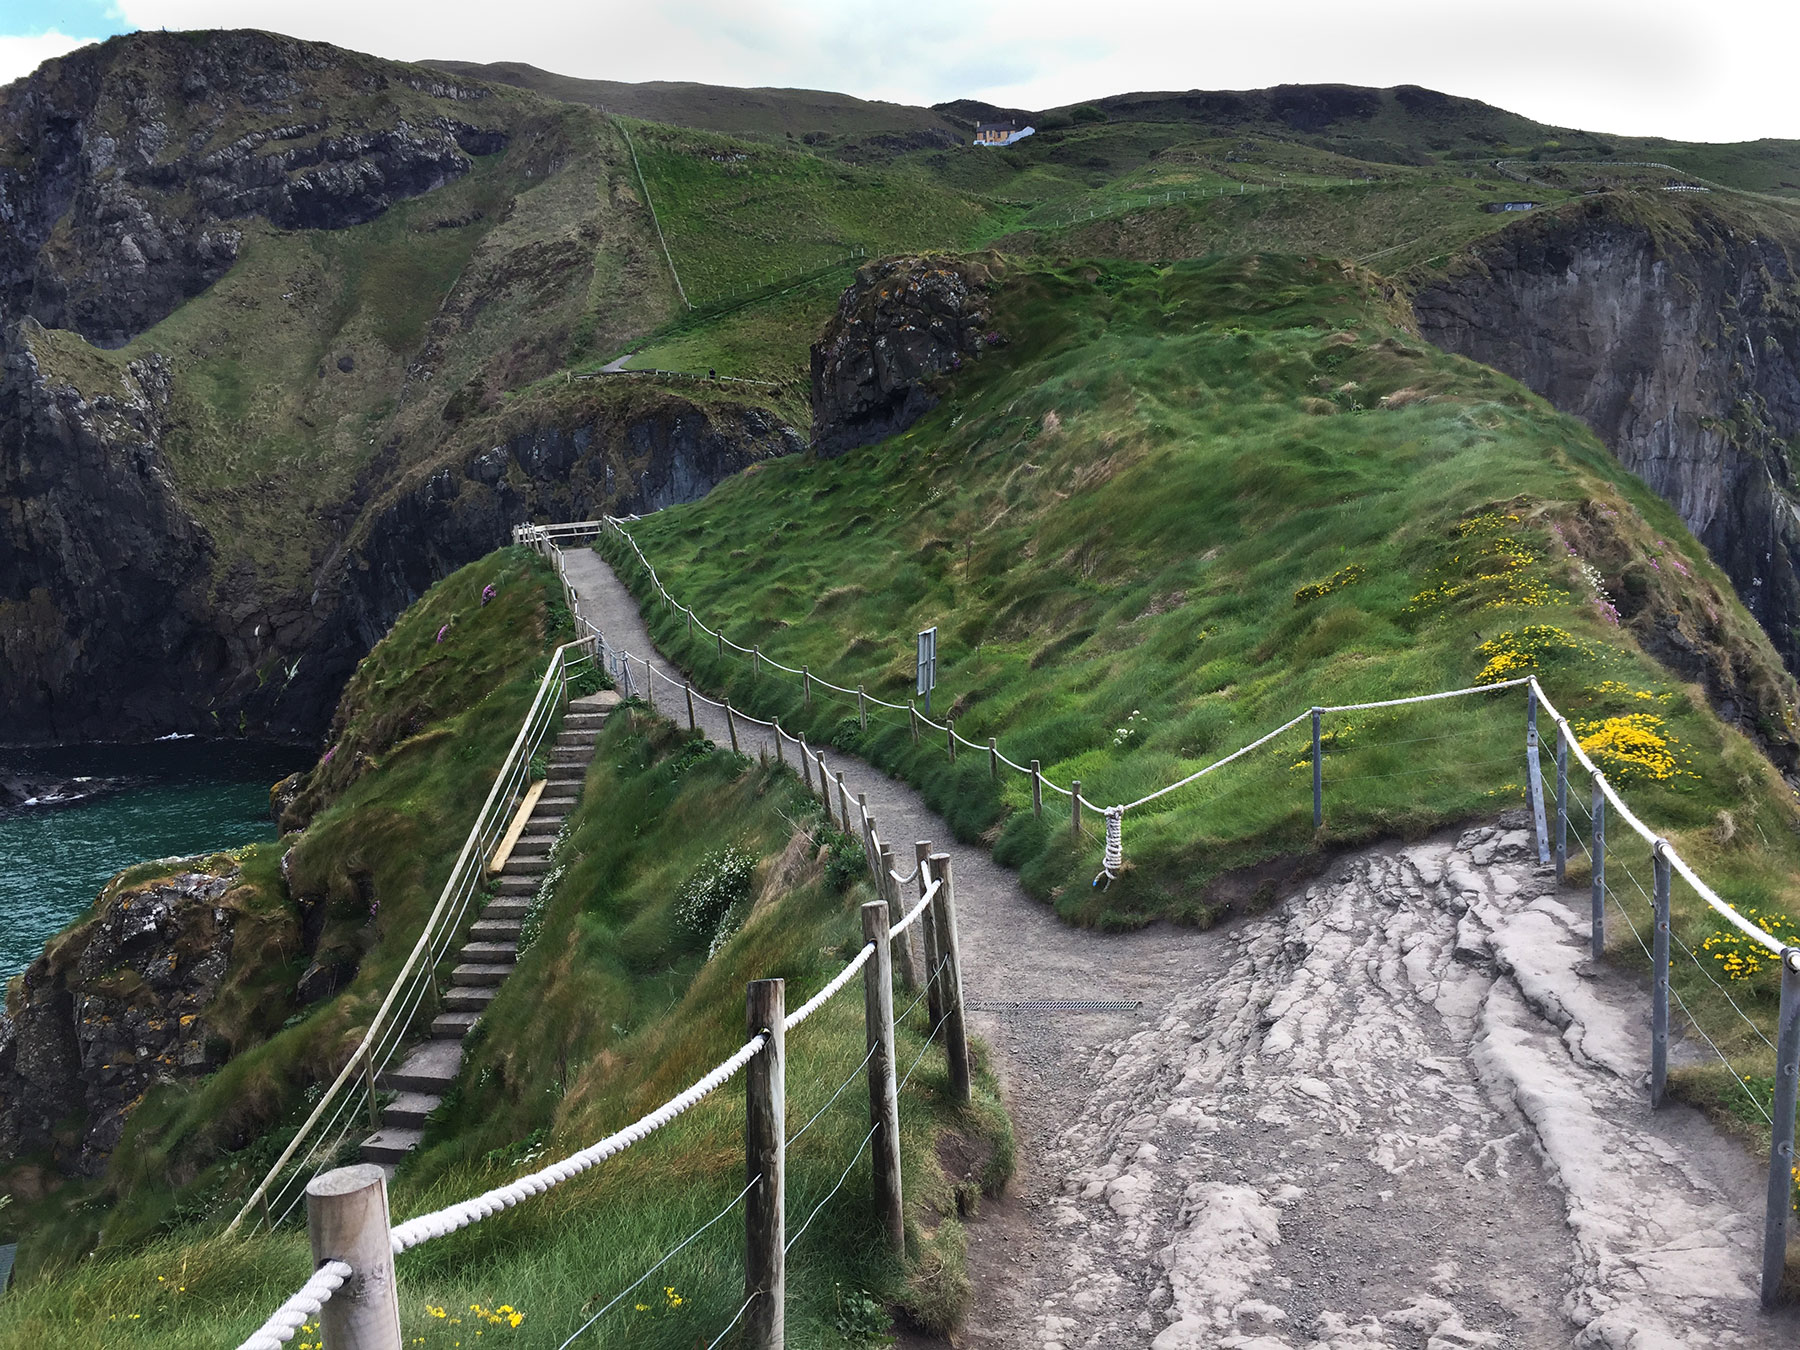 image of carrick a rede rope bridge in northern ireland, must see, stunning views, national trust, best coastal walks, county Antrim, Ireland, near Giant's causeway world heritage site, travel review by aunoralurra, aunoralurra, suggestions on places to see, razorbill bird, kittiwake